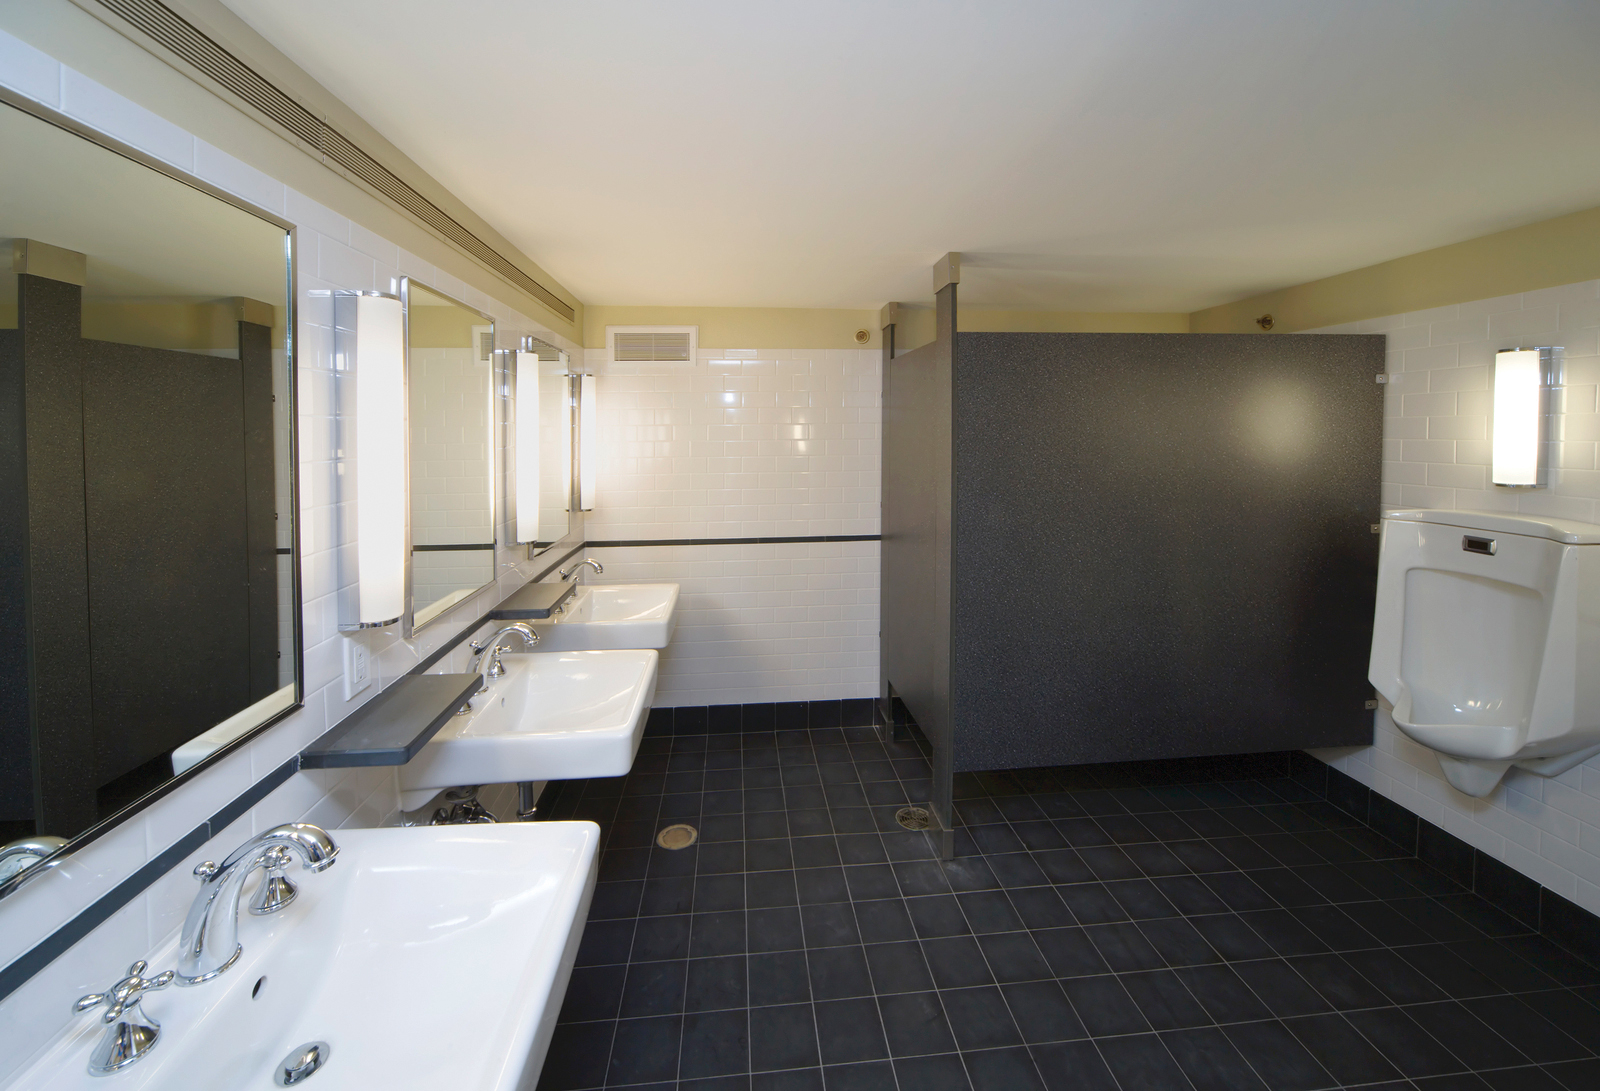 When designing public restrooms, Canadian Standards Association (CSA) B651-12, Accessible Design for the Built Environment, should be followed to ensure best practices. Photo © BigStock/Roy Grogan